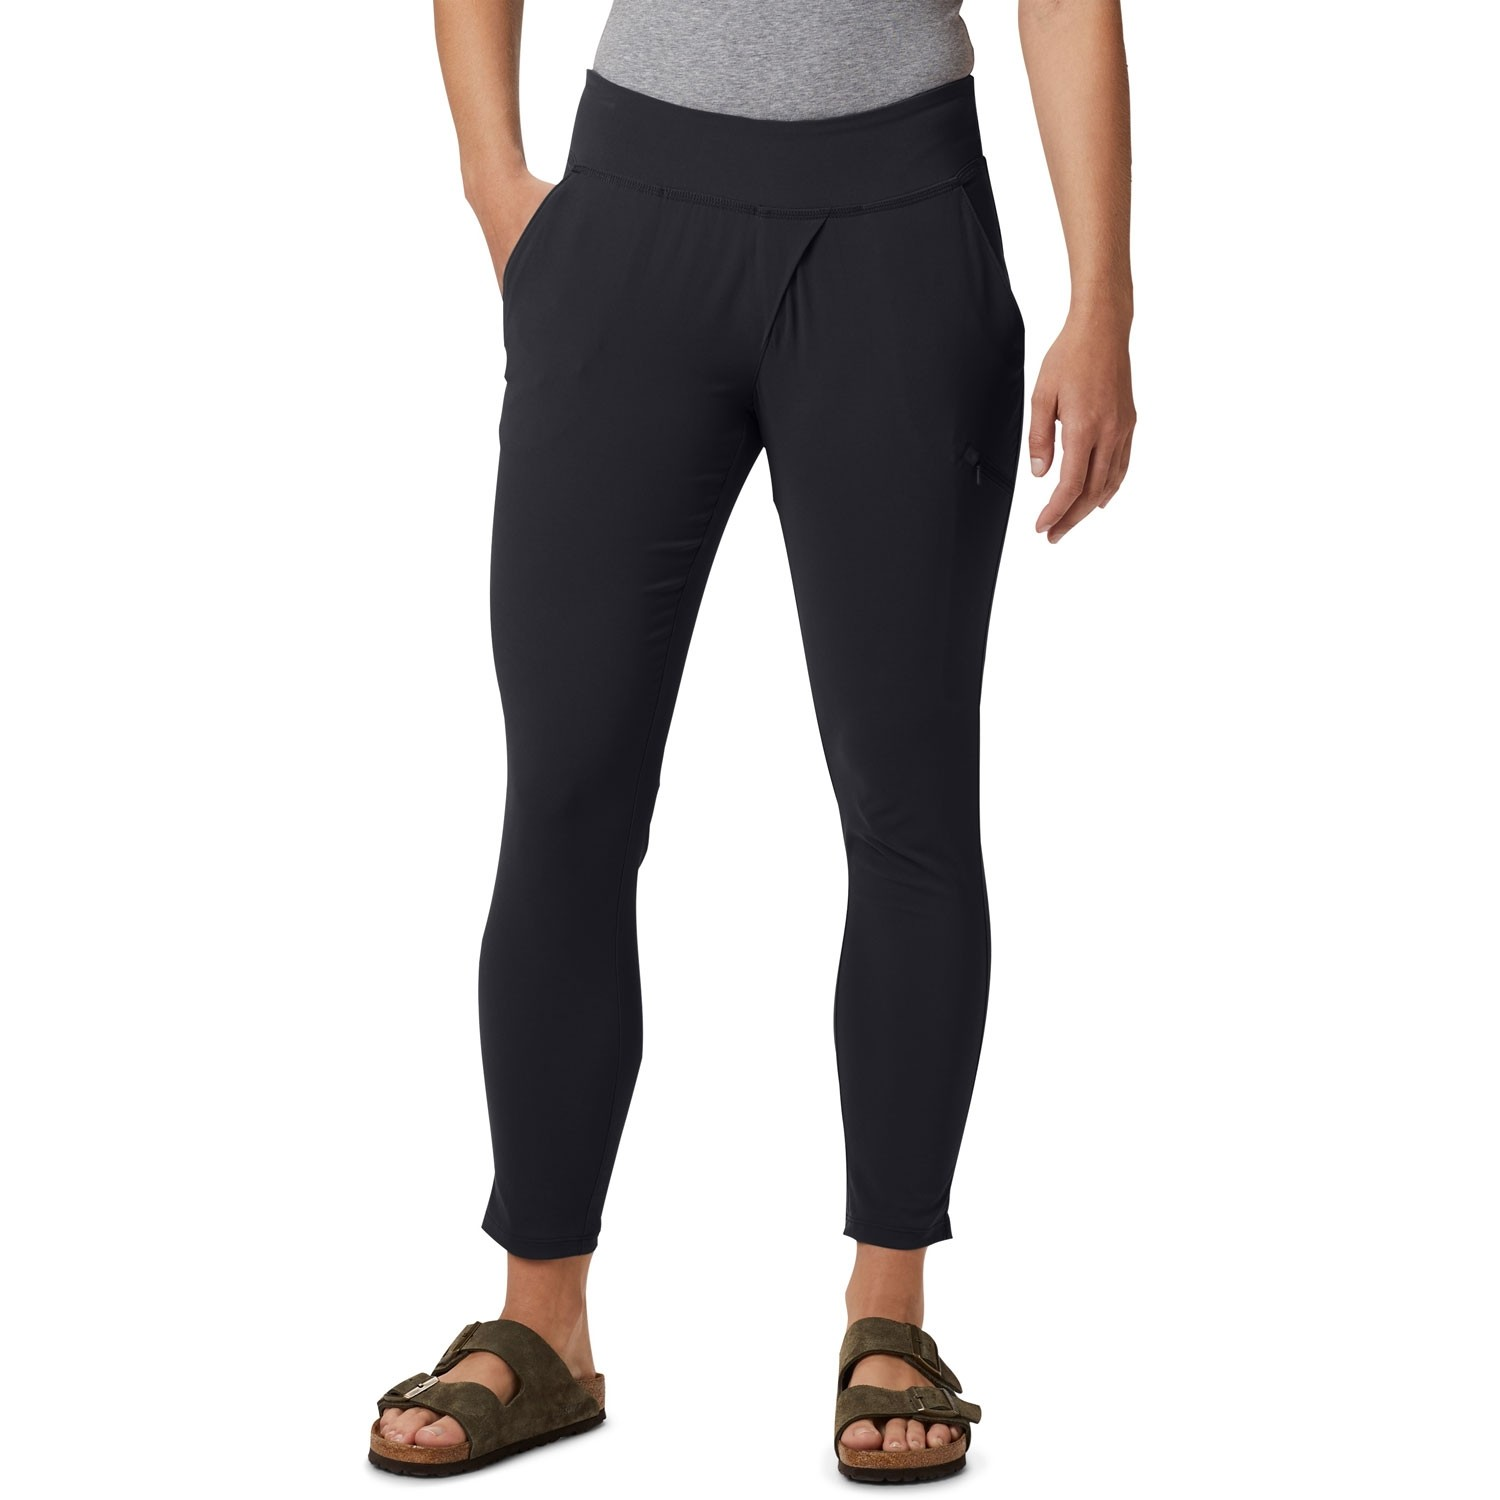 Mountain Hardwear Dynama Pants - Black - model front